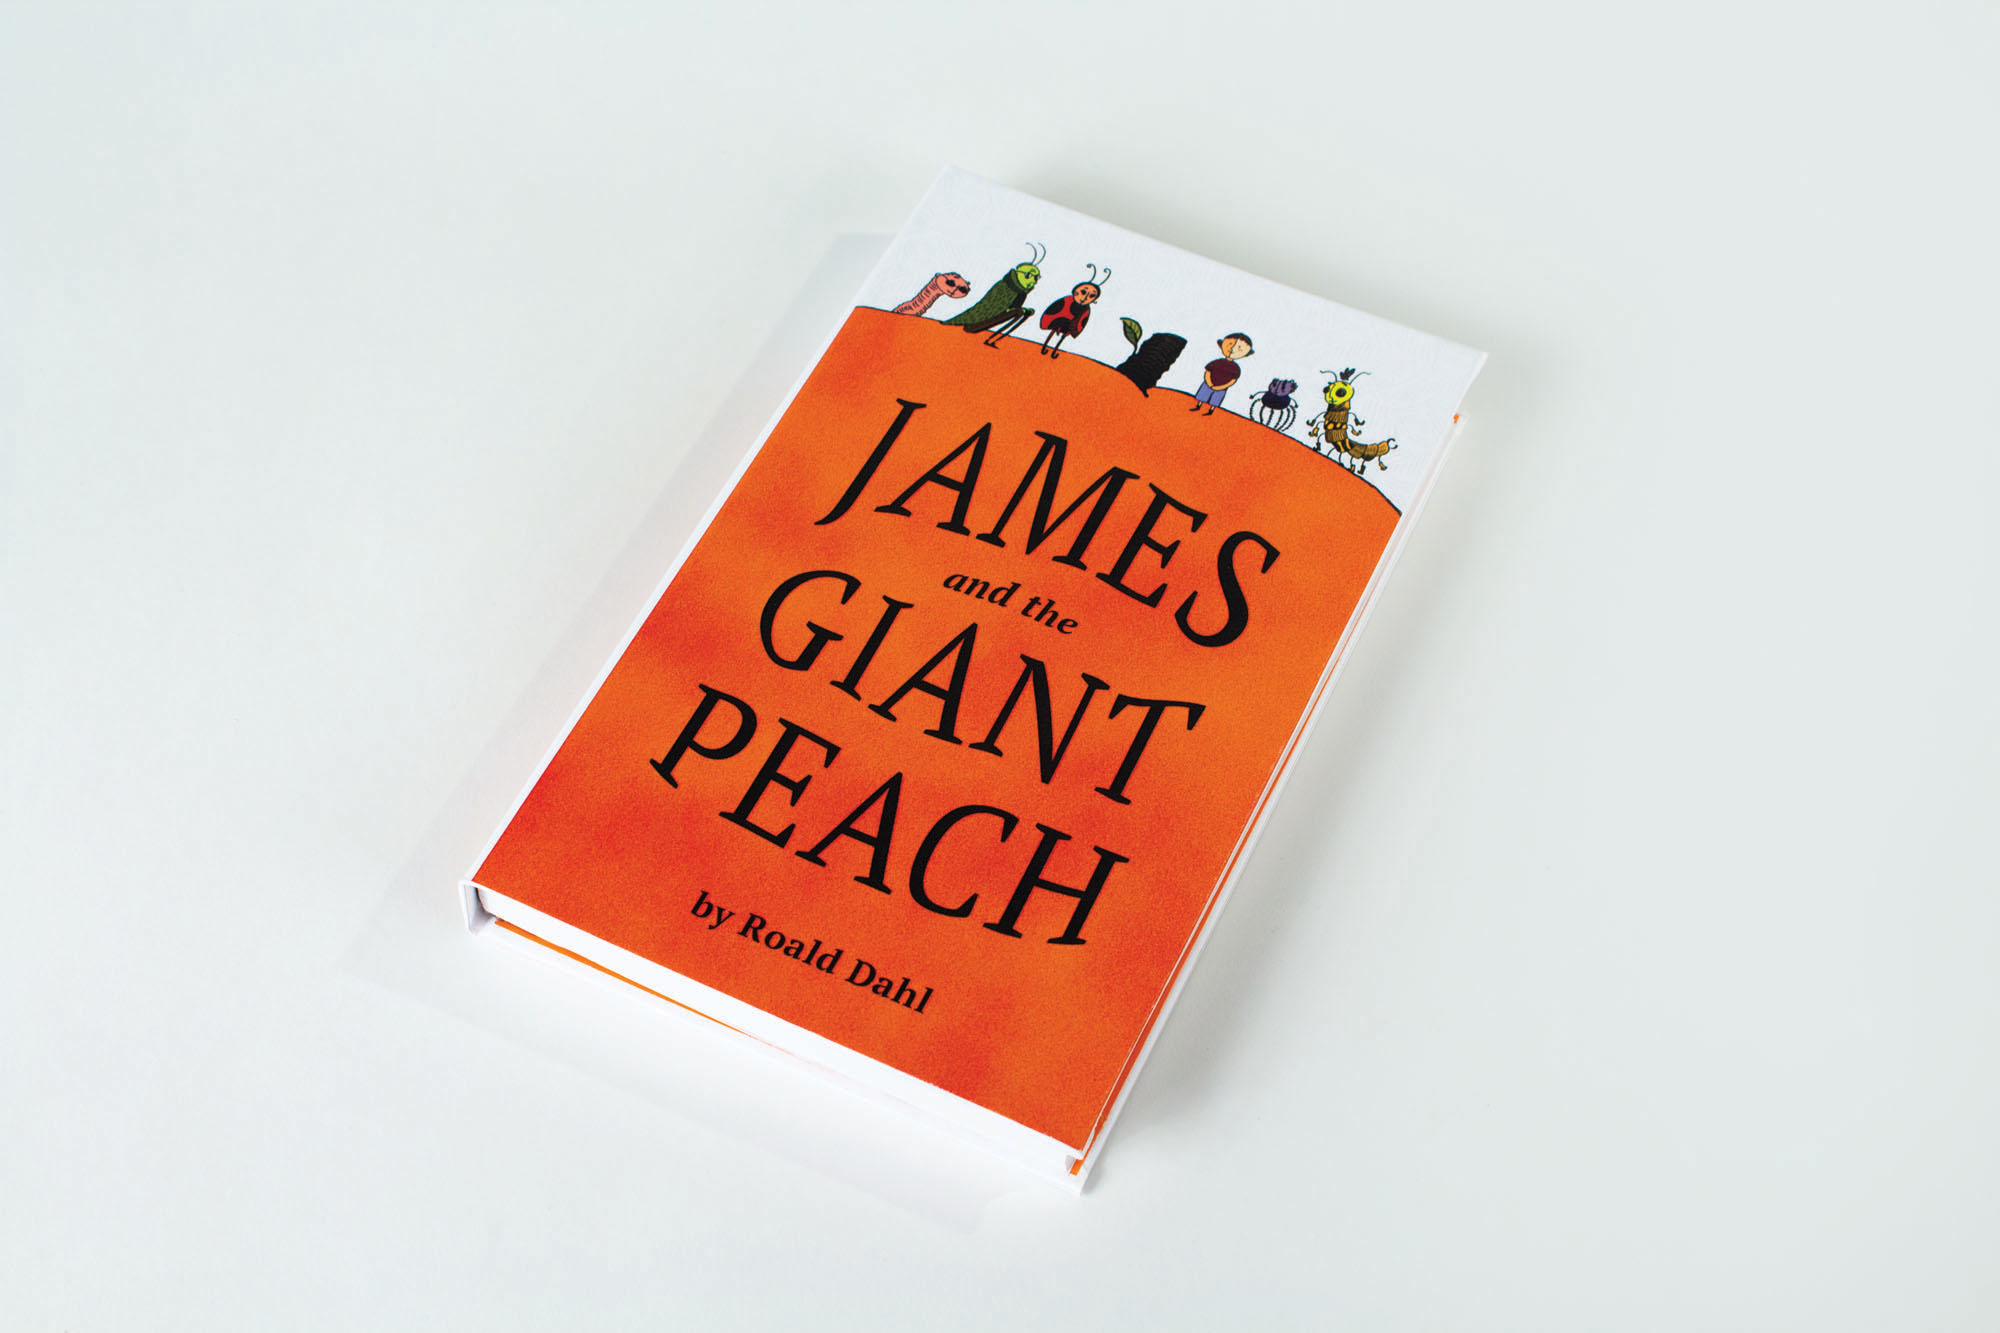 TangJessica-James and the Giant Peach-1.jpg